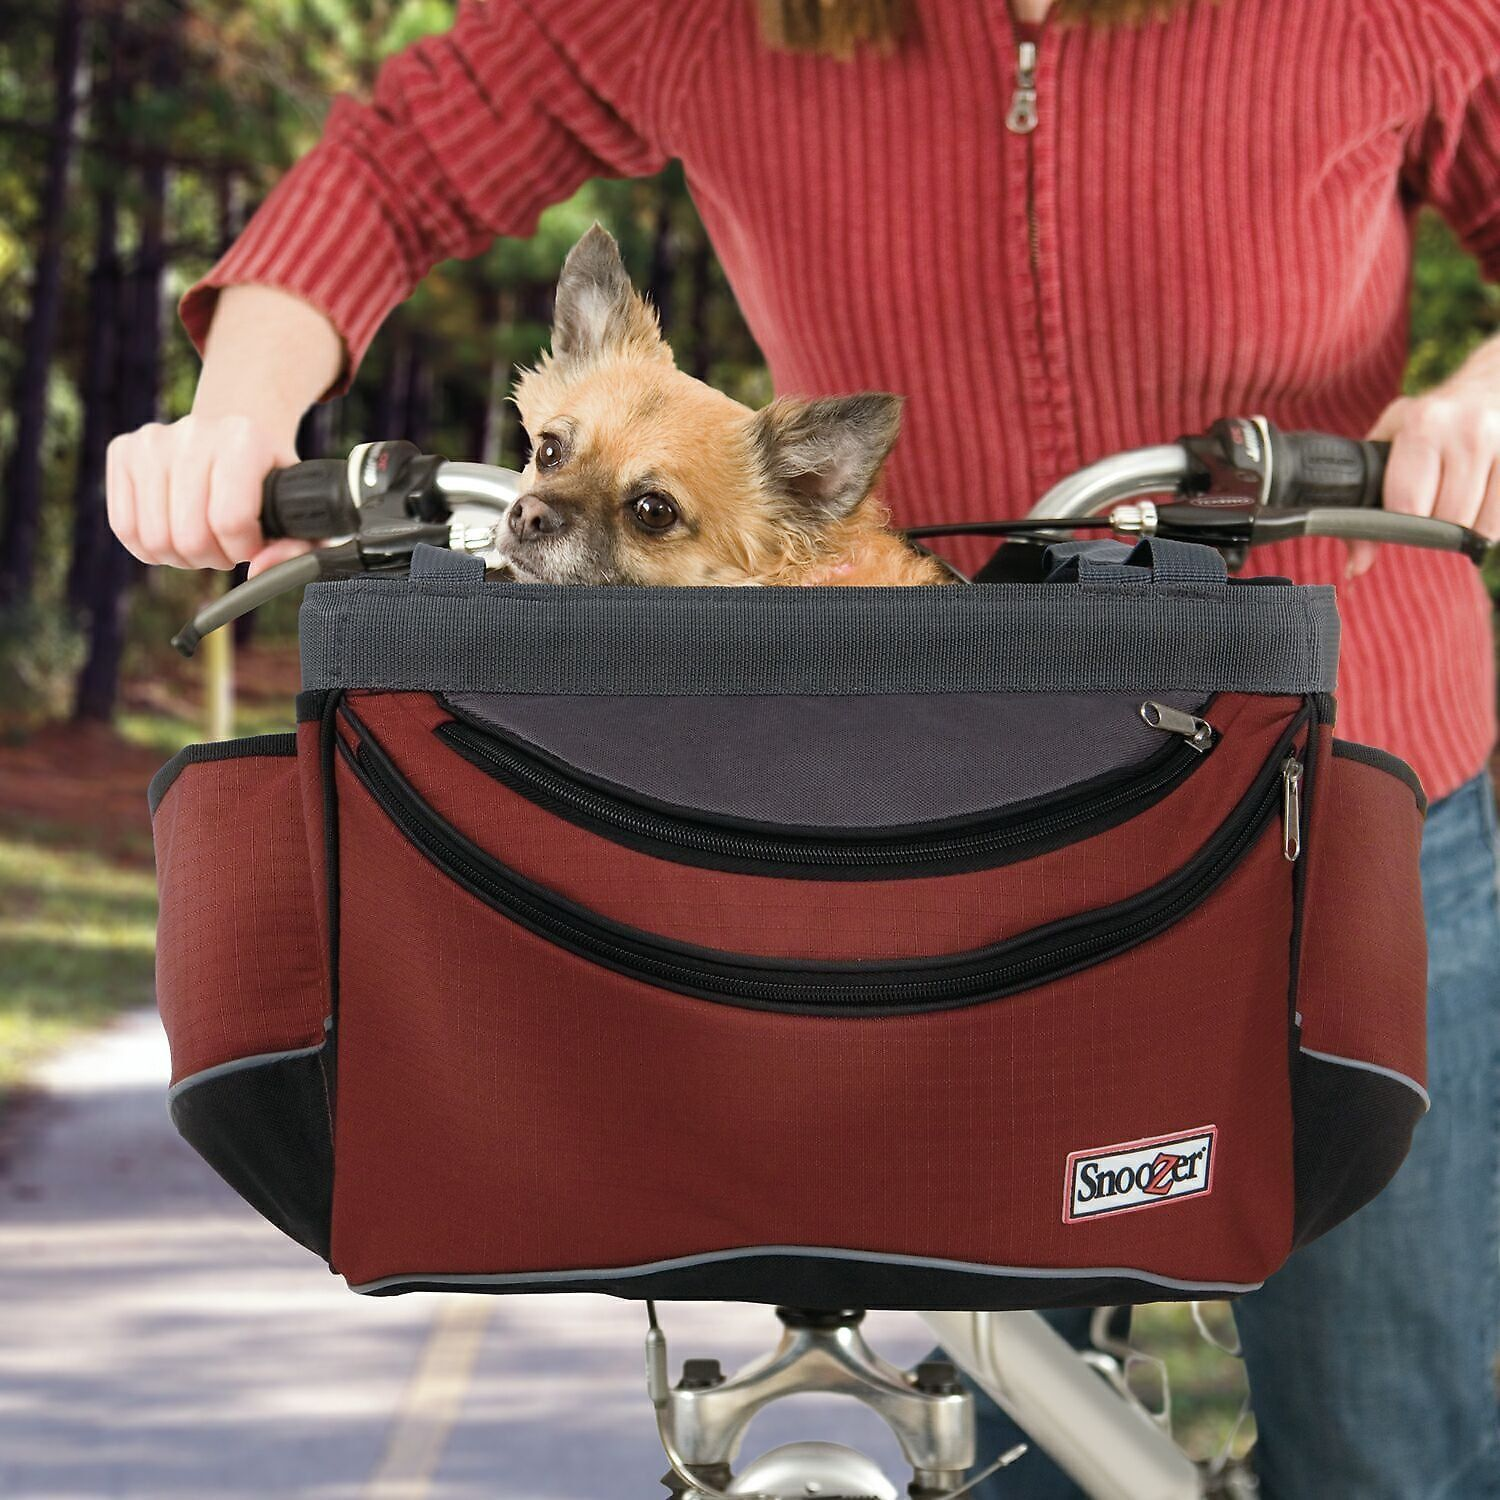 Take your adventurous pet out for a ride with the Snoozer